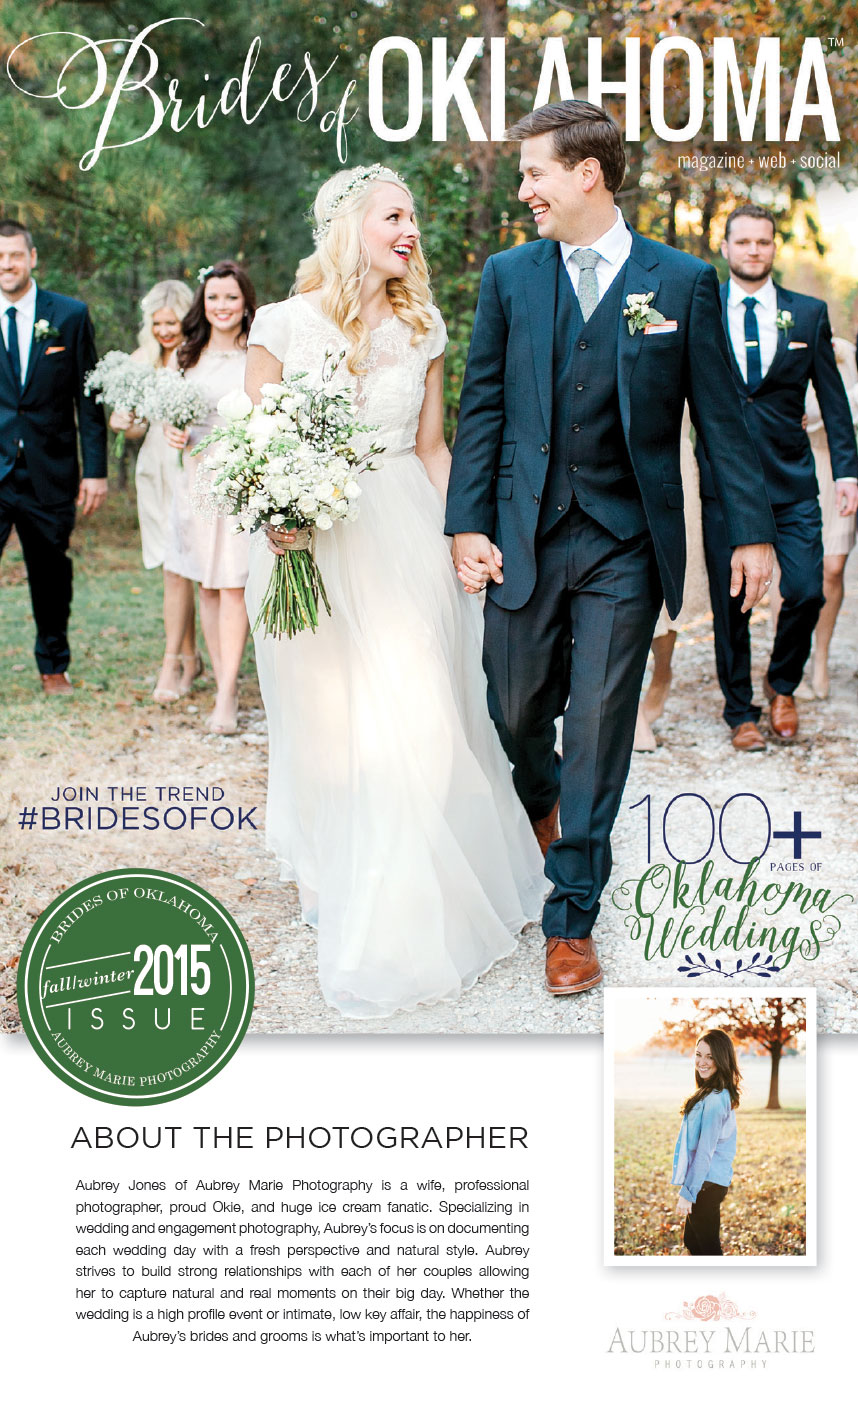 brides of oklahoma cover